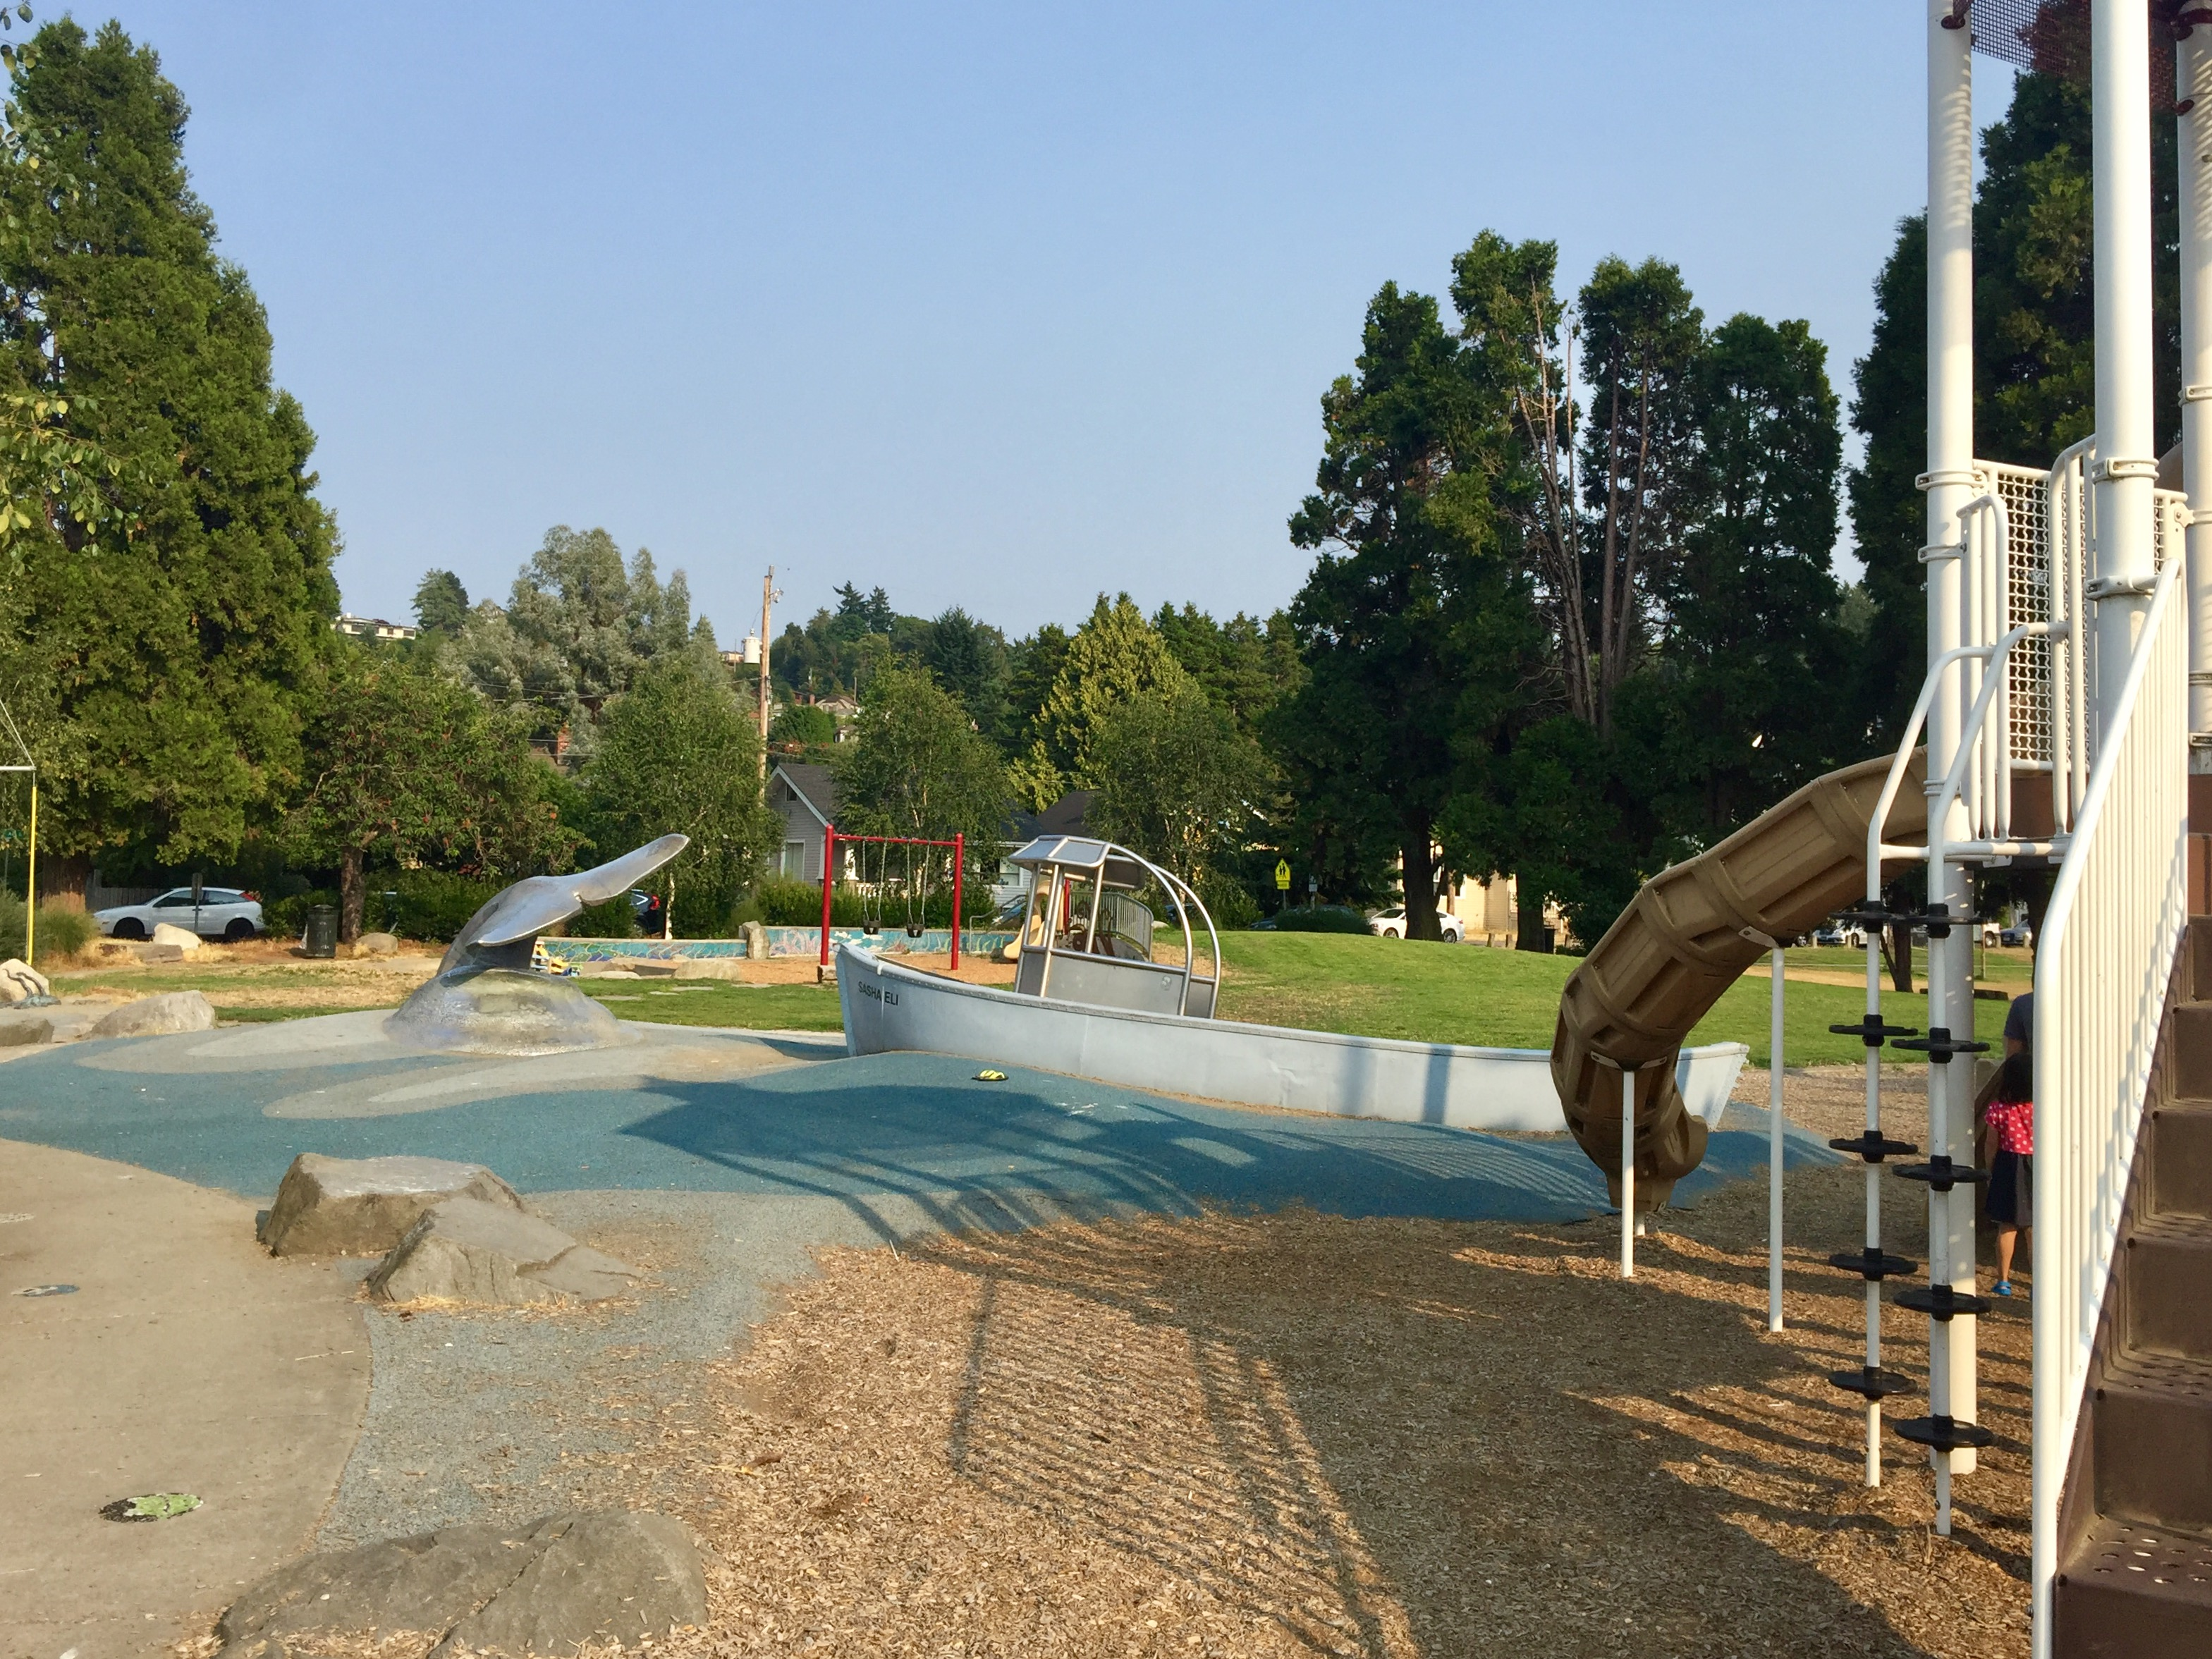 Alki Playground and Whale Tail Park